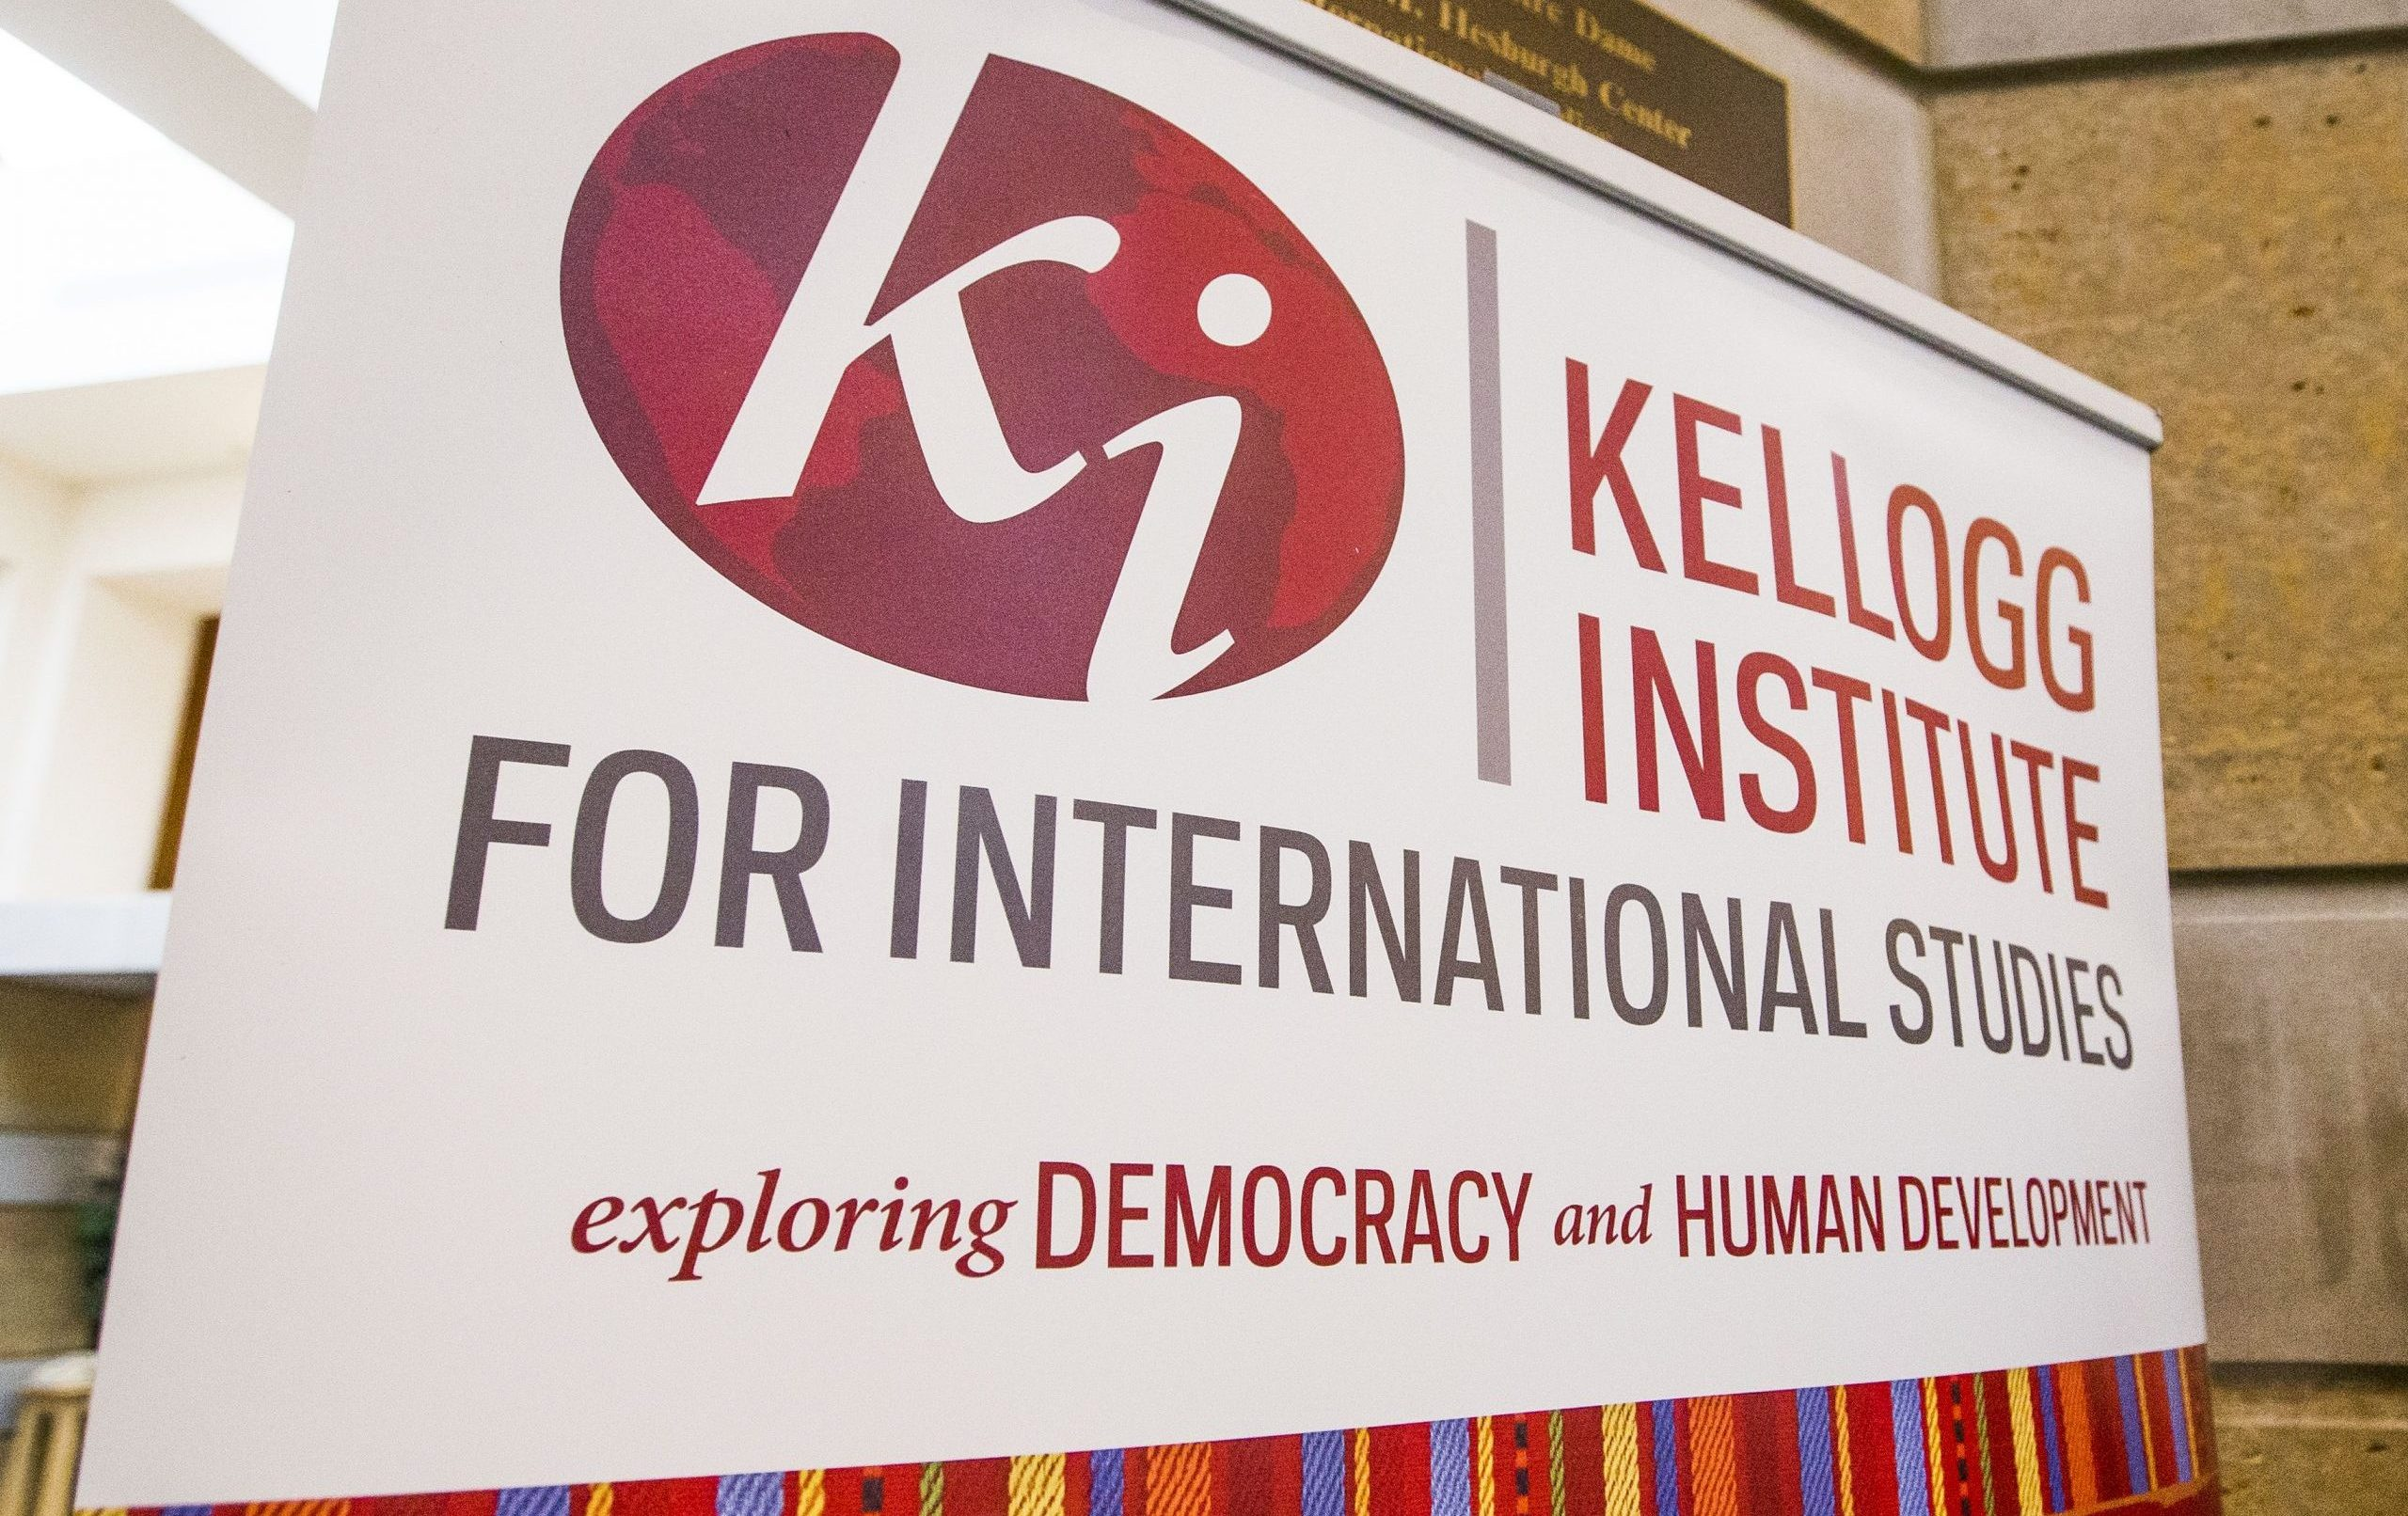 Kellogg Institute logo on a banner